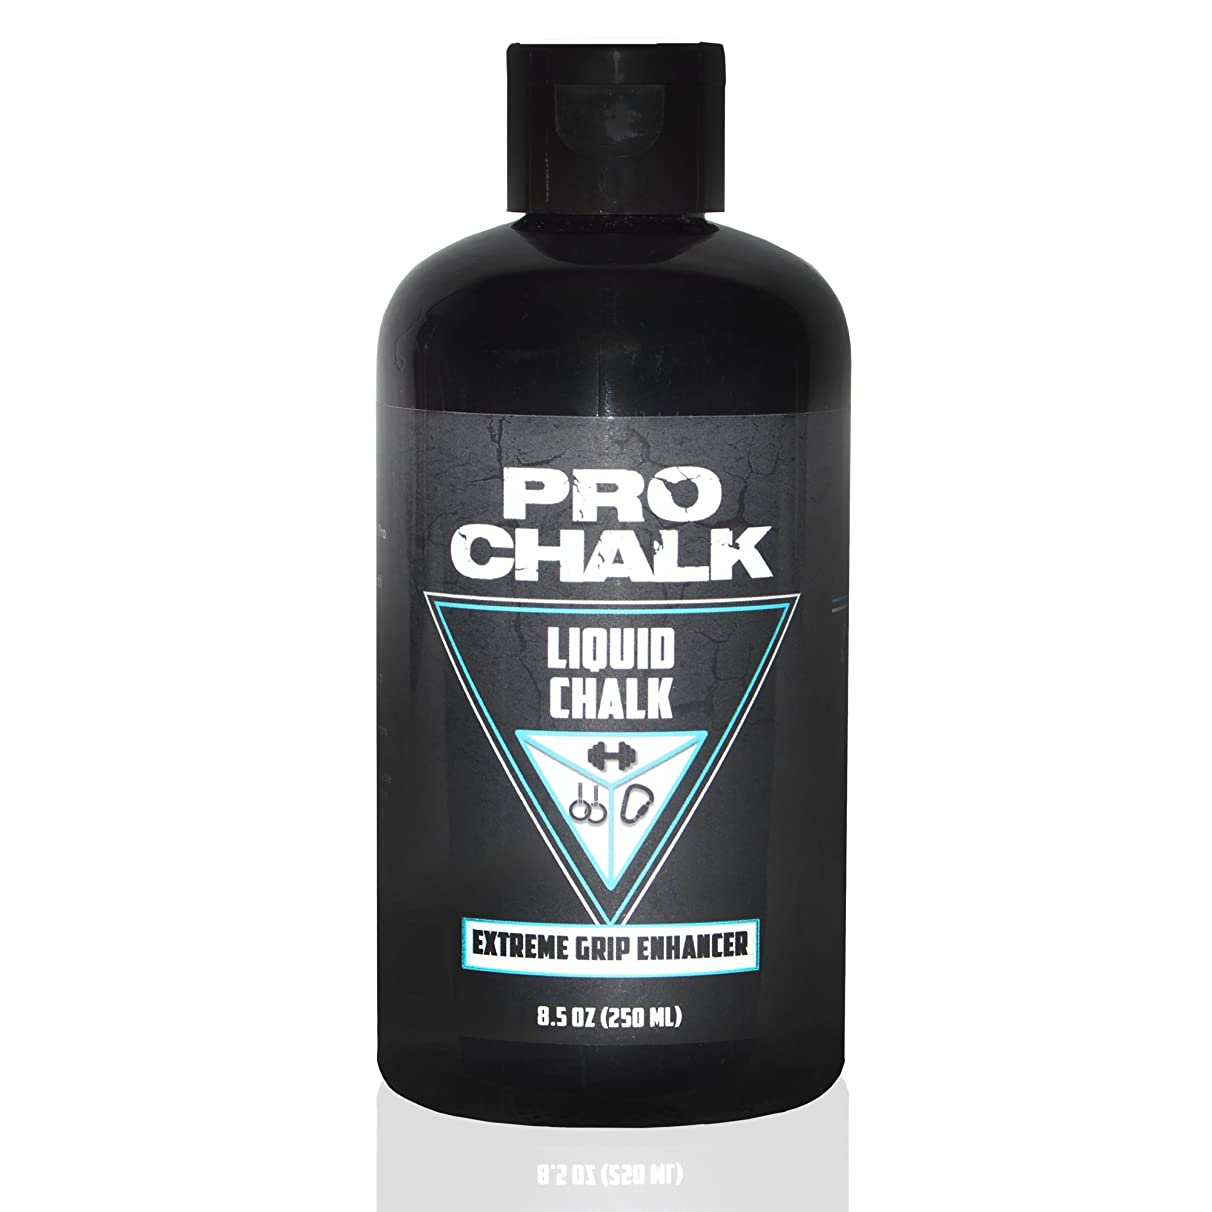 Pro Chalk Liquid Chalk | Greatly Improved Grip with No Mess | Quick-Drying Formula | Best Chalk for Weightlifting, Climbing, Gymnastics, and CrossFit.